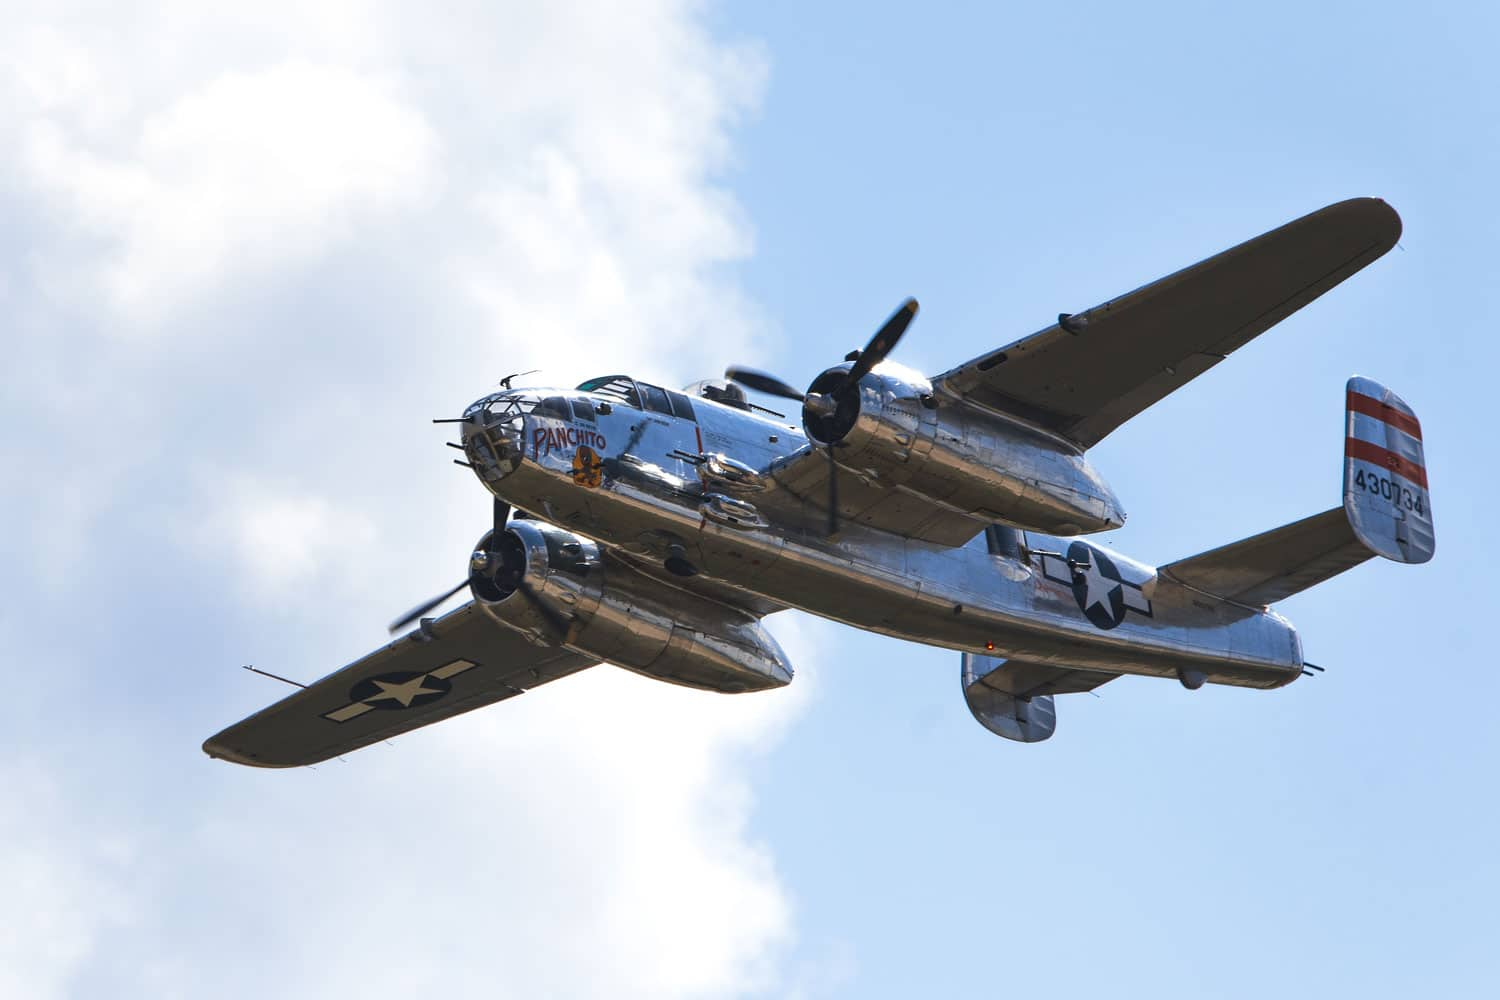 A B-25 Panchito airplane flies over Joint Base Andrews, Md., during the 2017 Andrews Air Show: Air and Space Expo.